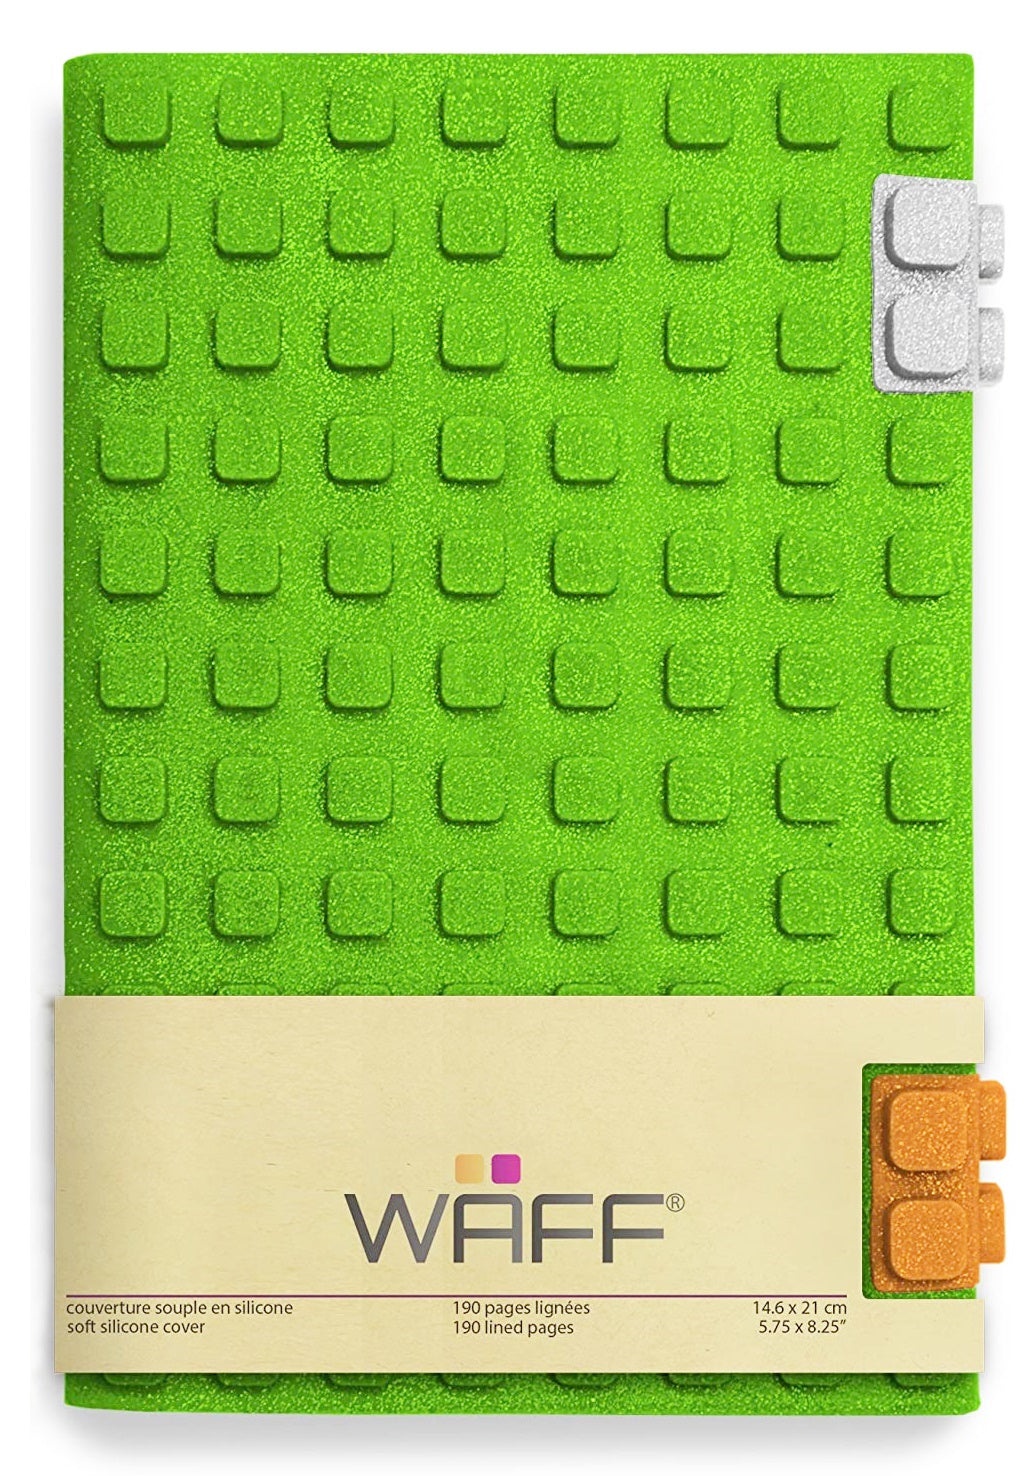 WAFF Silicone Cover Notebook / Journal (Large) 矽膠拼字外套連日記手帳 (大單本)